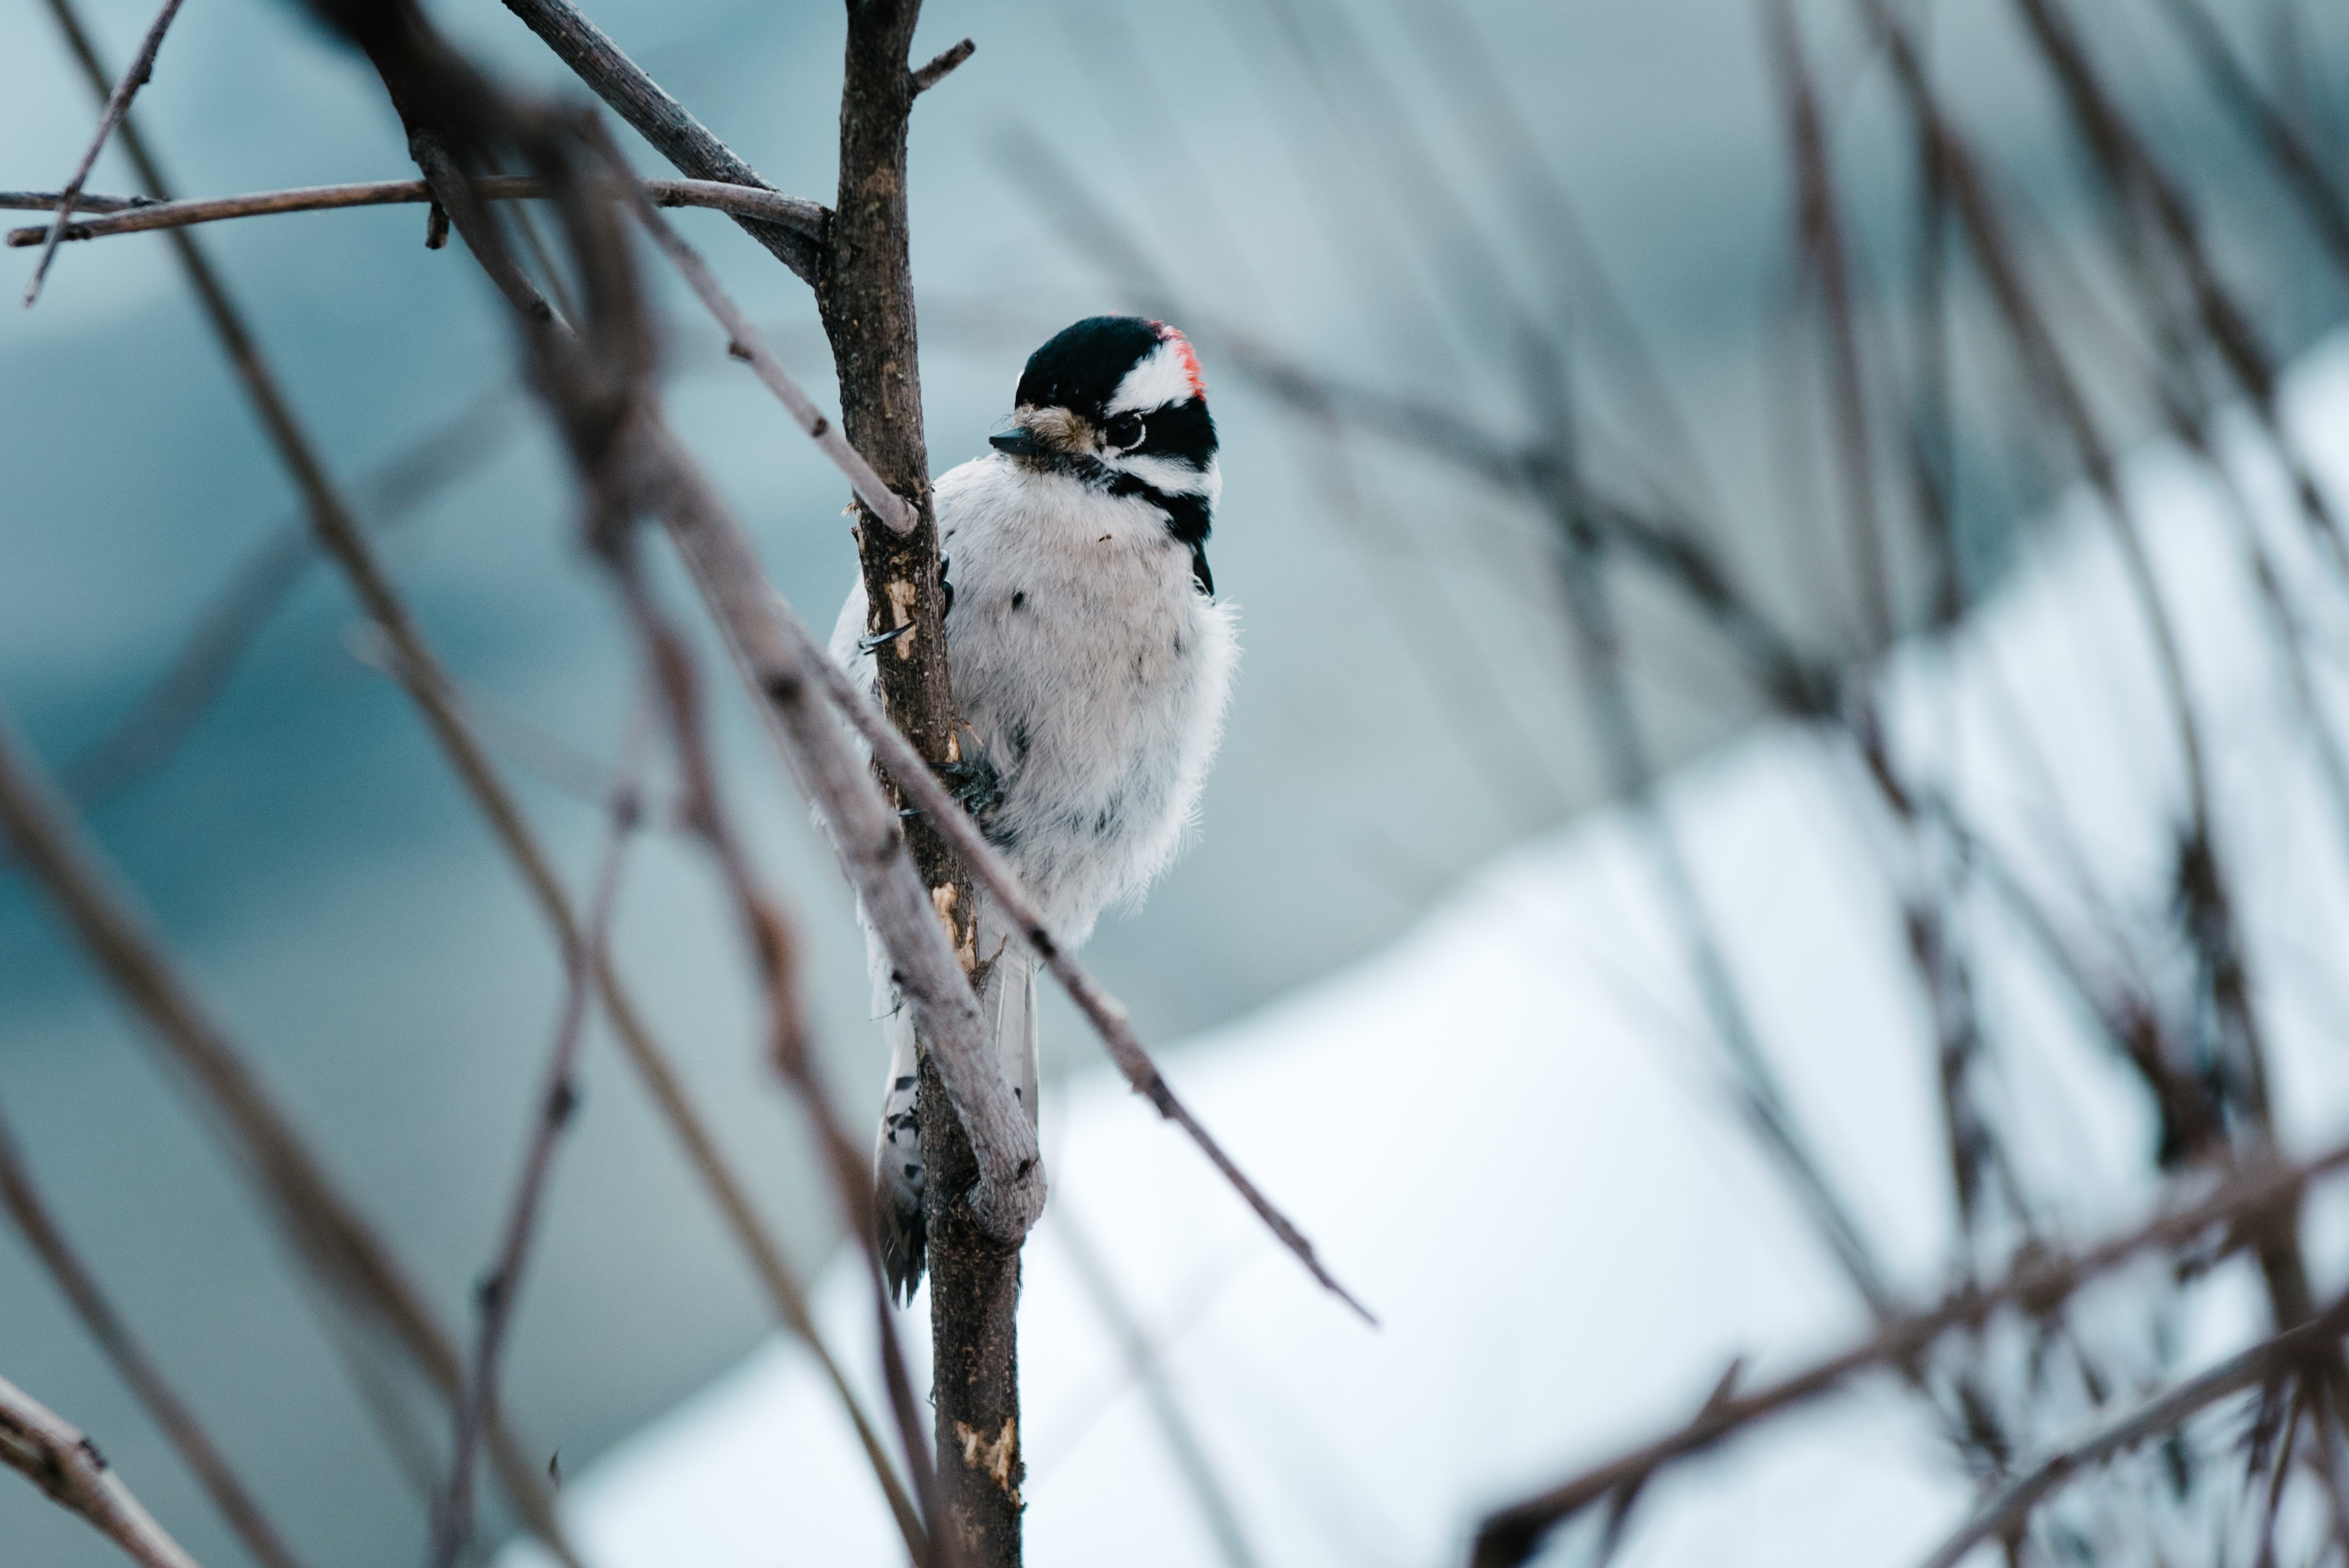 A black and white bird perches on a tree branch with snow in the background